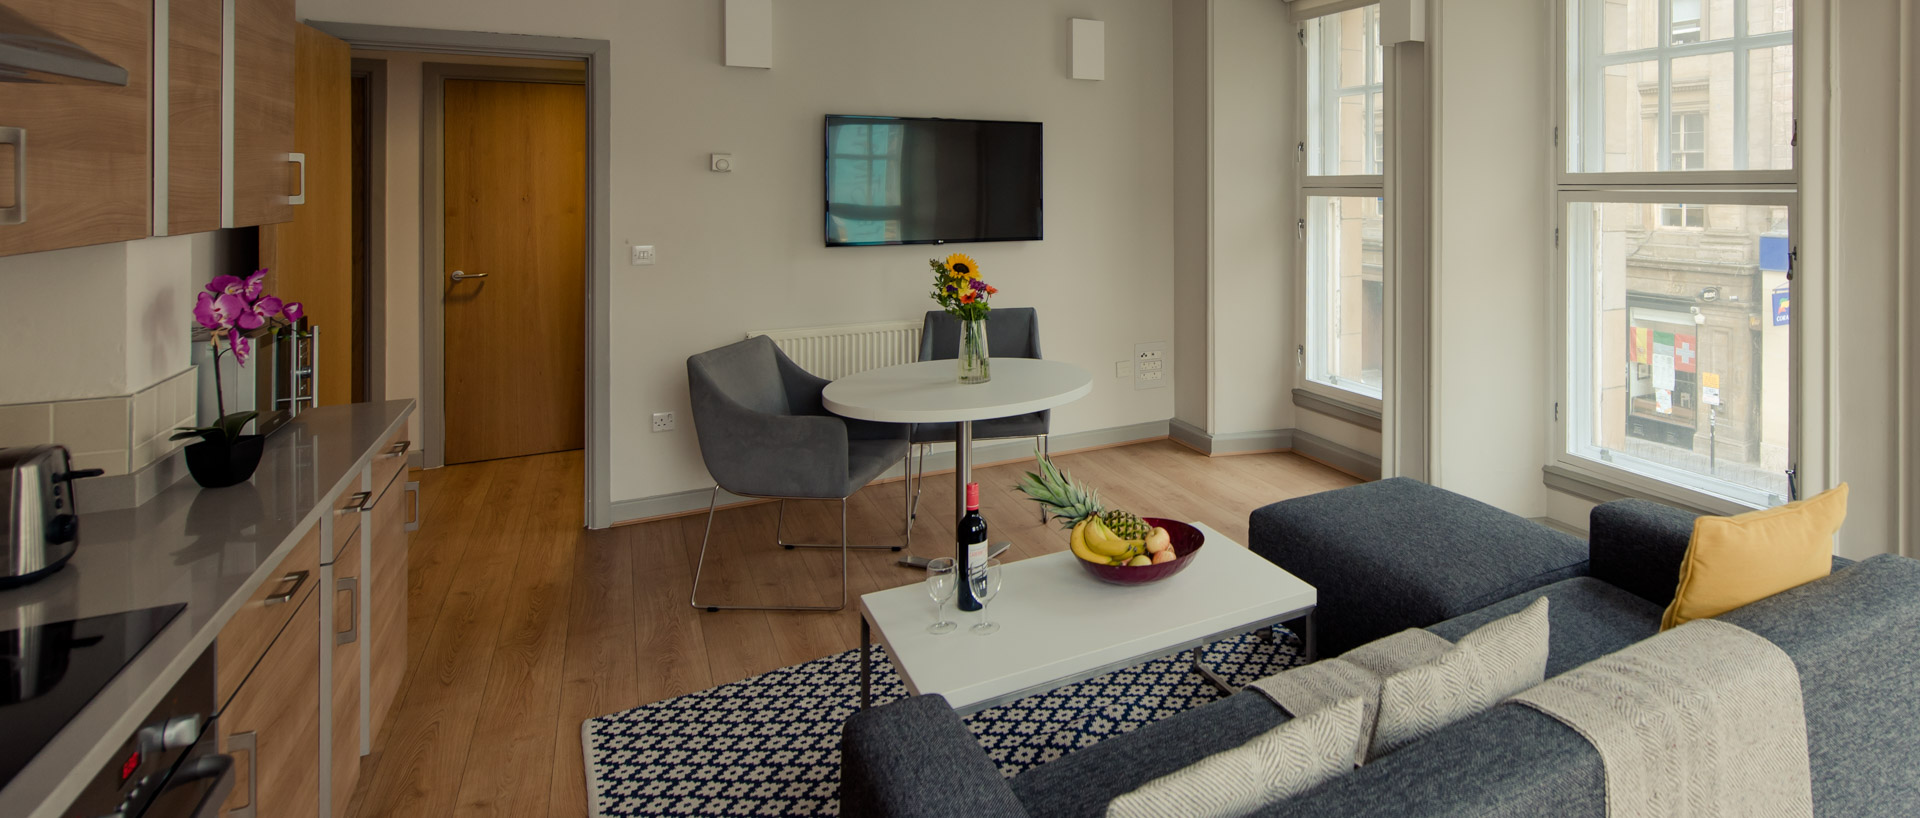 PREMIER SUITES PLUS Glasgow one bedroom serviced apartment